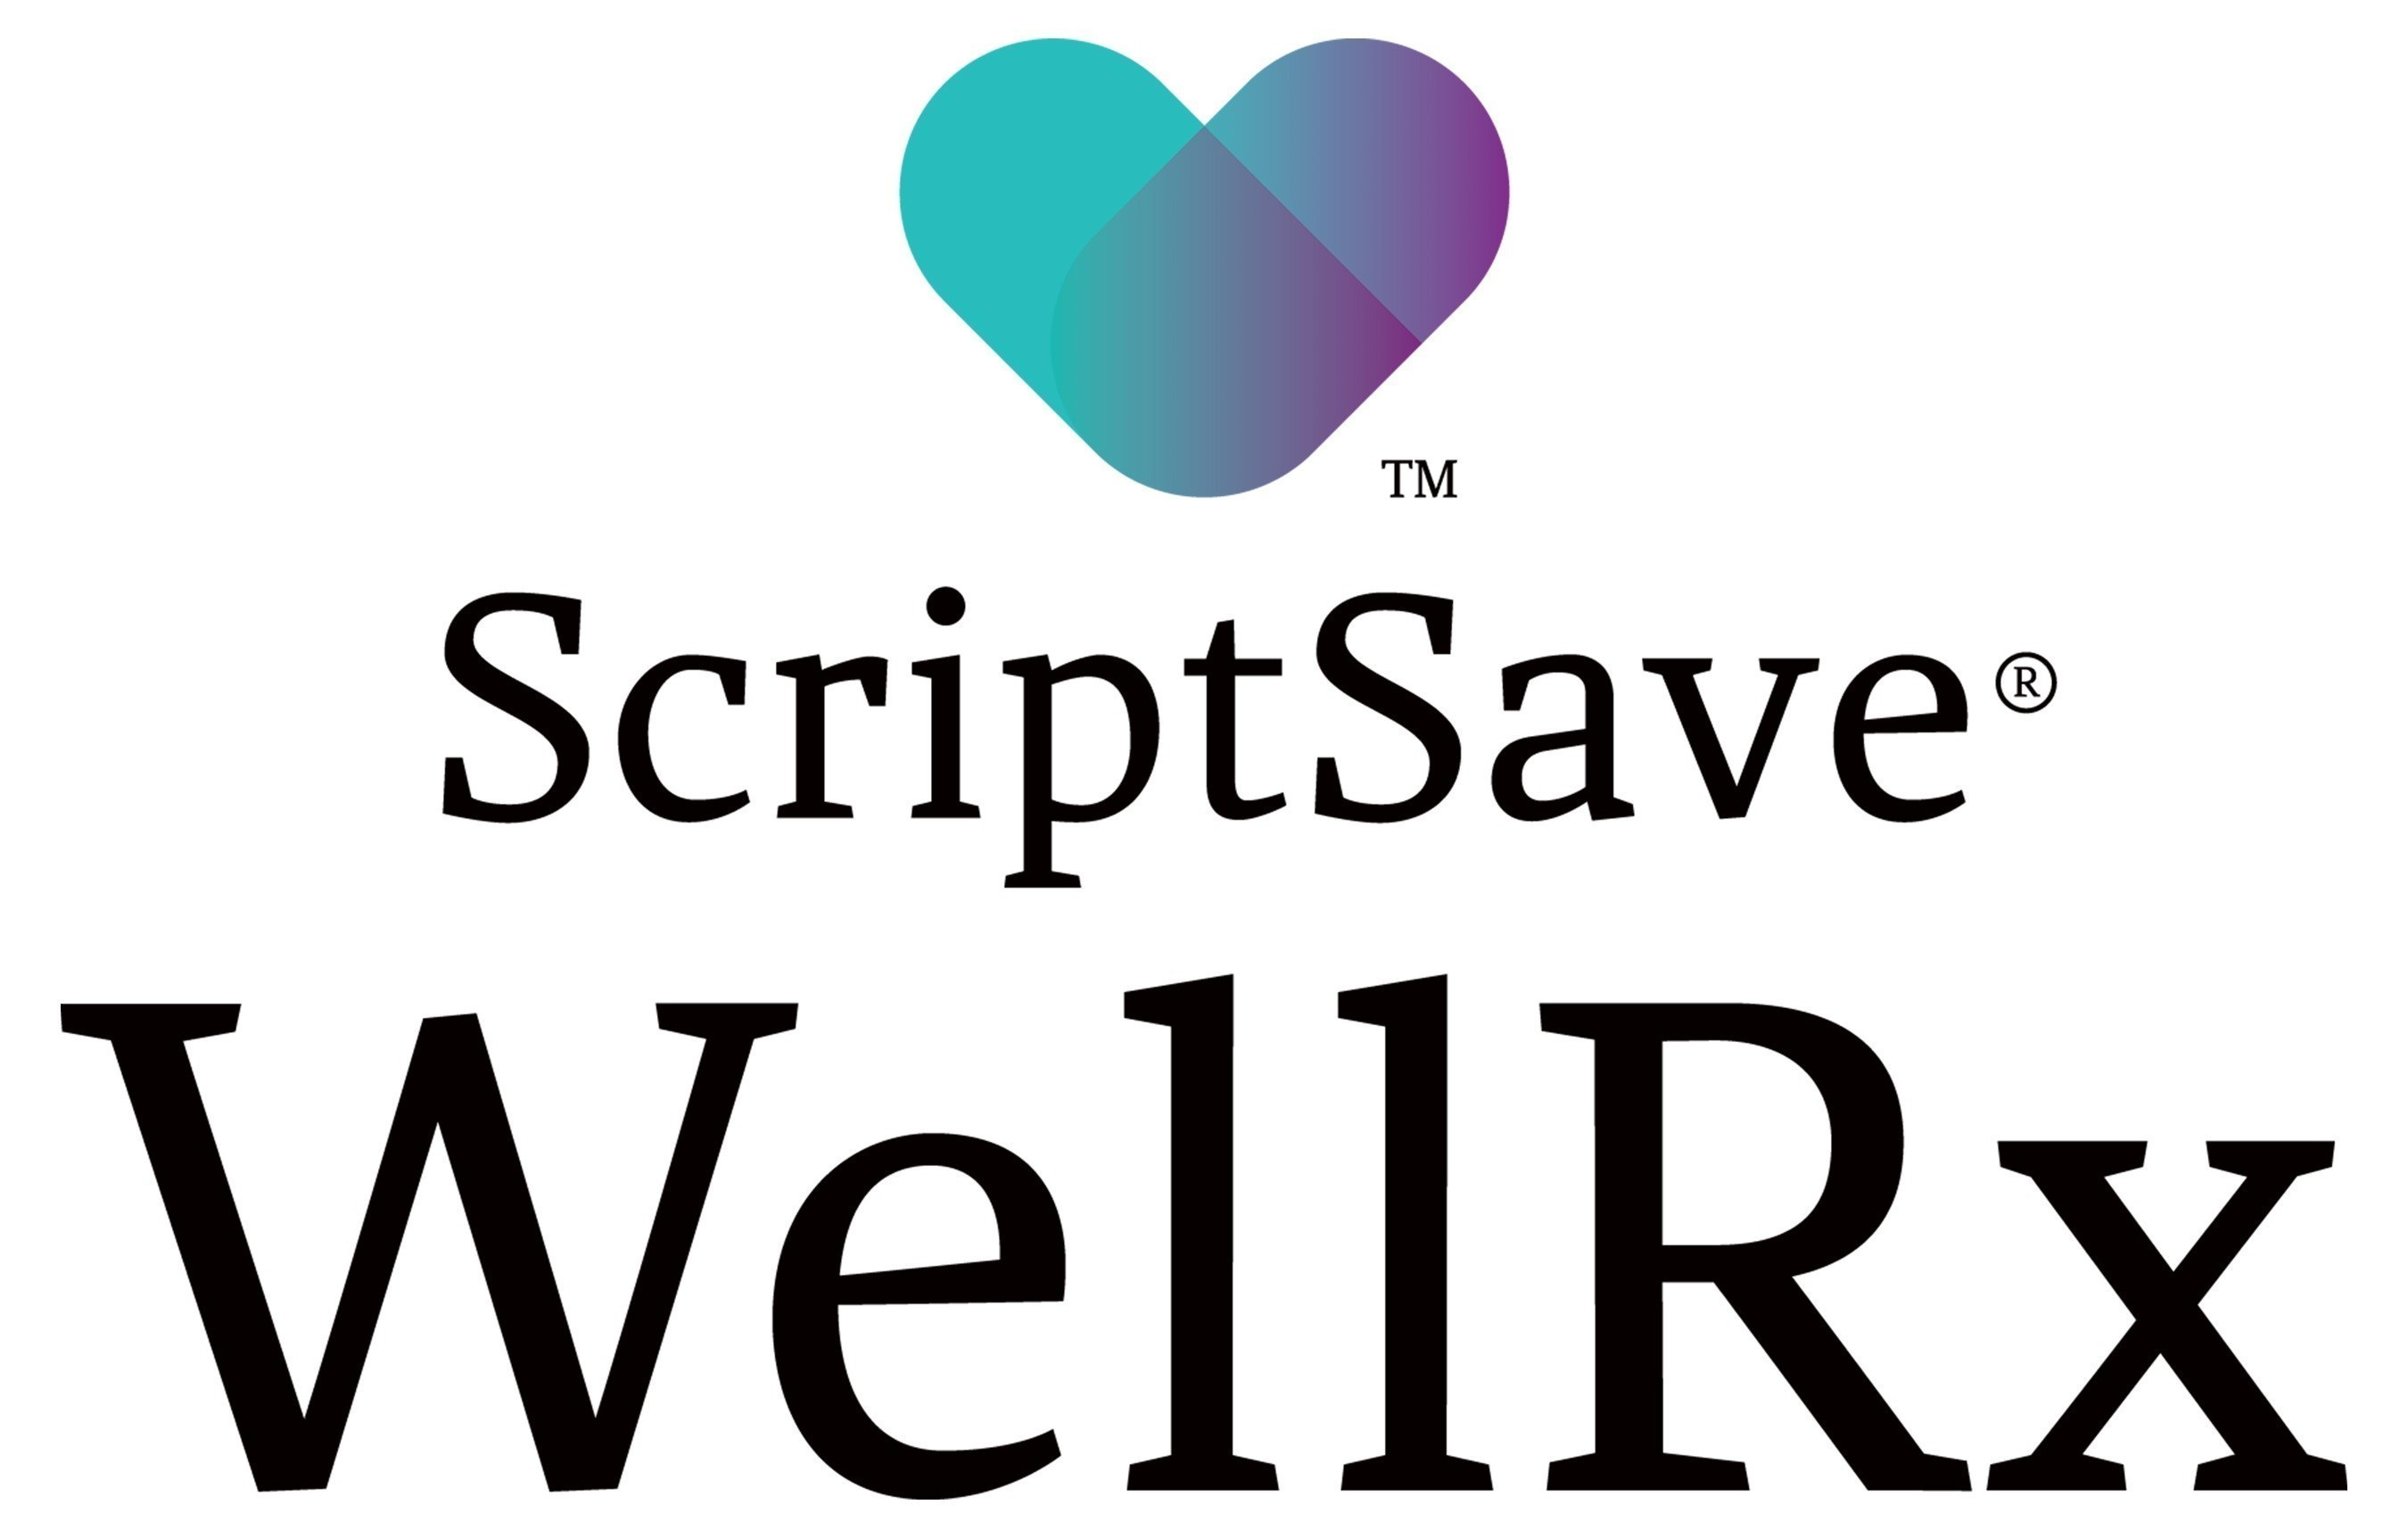 scriptsave wellrx featured on the balancing act